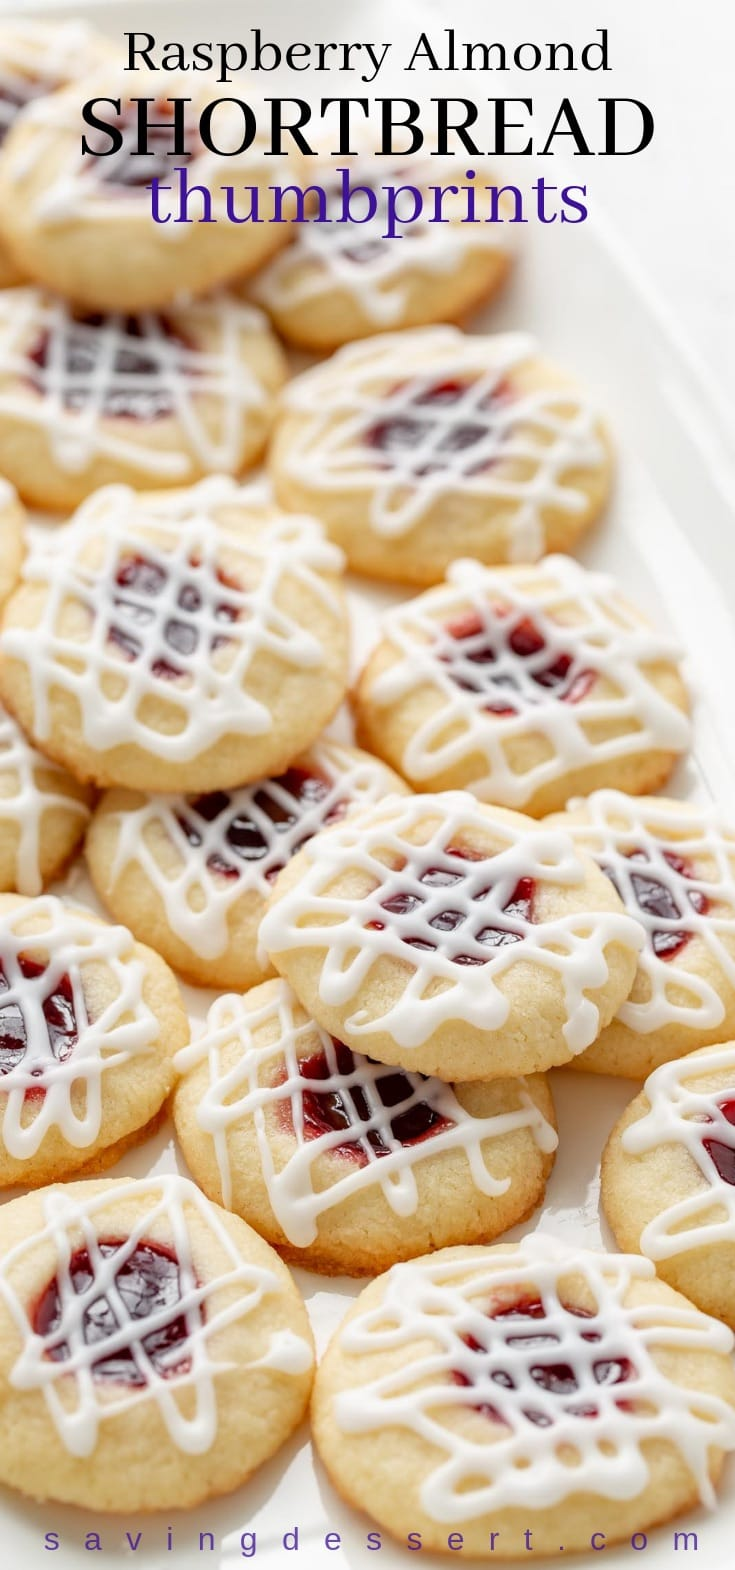 Raspberry Almond Shortbread Thumbprint Cookies - a tender shortbread cookie packed with raspberry jam and topped with a simple almond flavored icing. #cookies #raspberryalmondshortbreadthumbprint #thumbprint #cookies #holidaycookies #holidaybaking #shortbread #raspberry